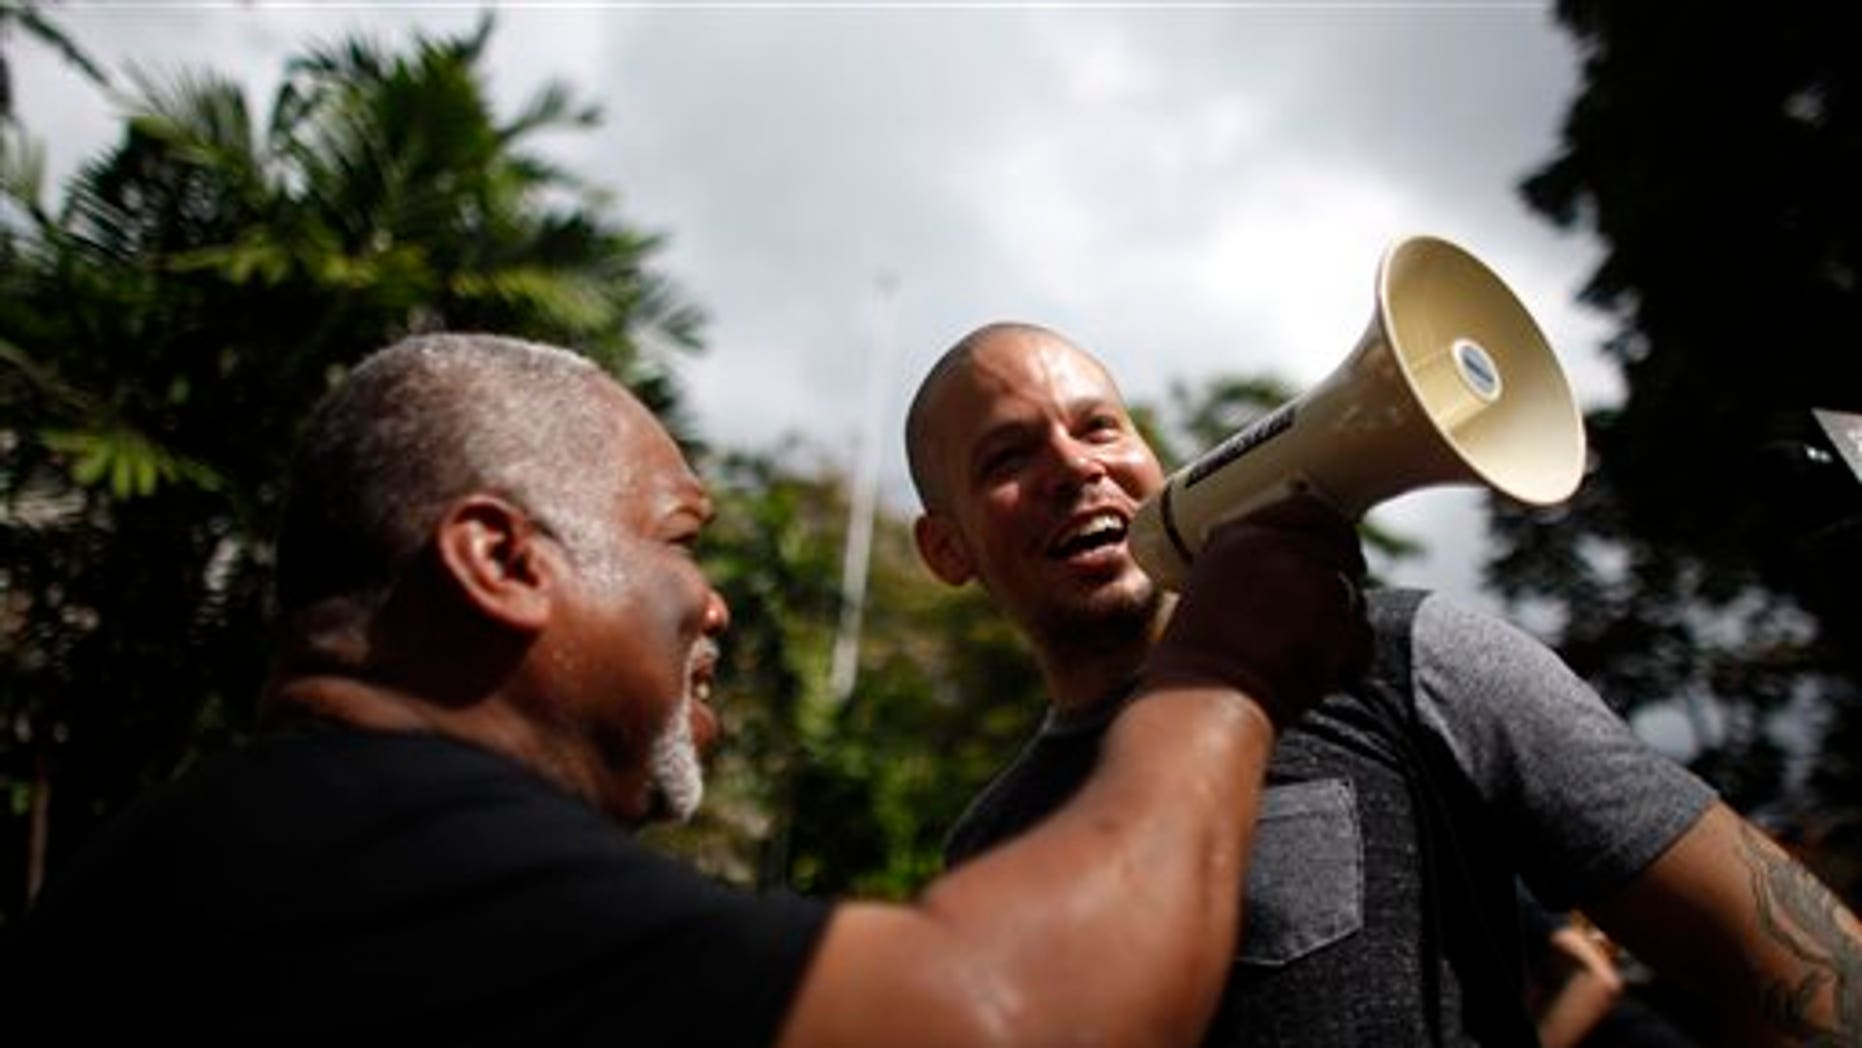 """Striking teacher Jose Iturbe, left, holds up the megaphone to entertainer Rene Perez Joglar, also known as """"Residente"""" from Puerto Rico's musical group Calle 13, who joined the protest by striking teachers outside a public school in San Juan, Puerto Rico, Tuesday, Jan. 14, 2014. Hundreds of teachers across Puerto Rico walked off their jobs in a two-day strike over cuts to their pensions that the island's government says are necessary to avert financial disaster but that educators say will force many of them into poverty. (AP Photo/Ricardo Arduengo)"""